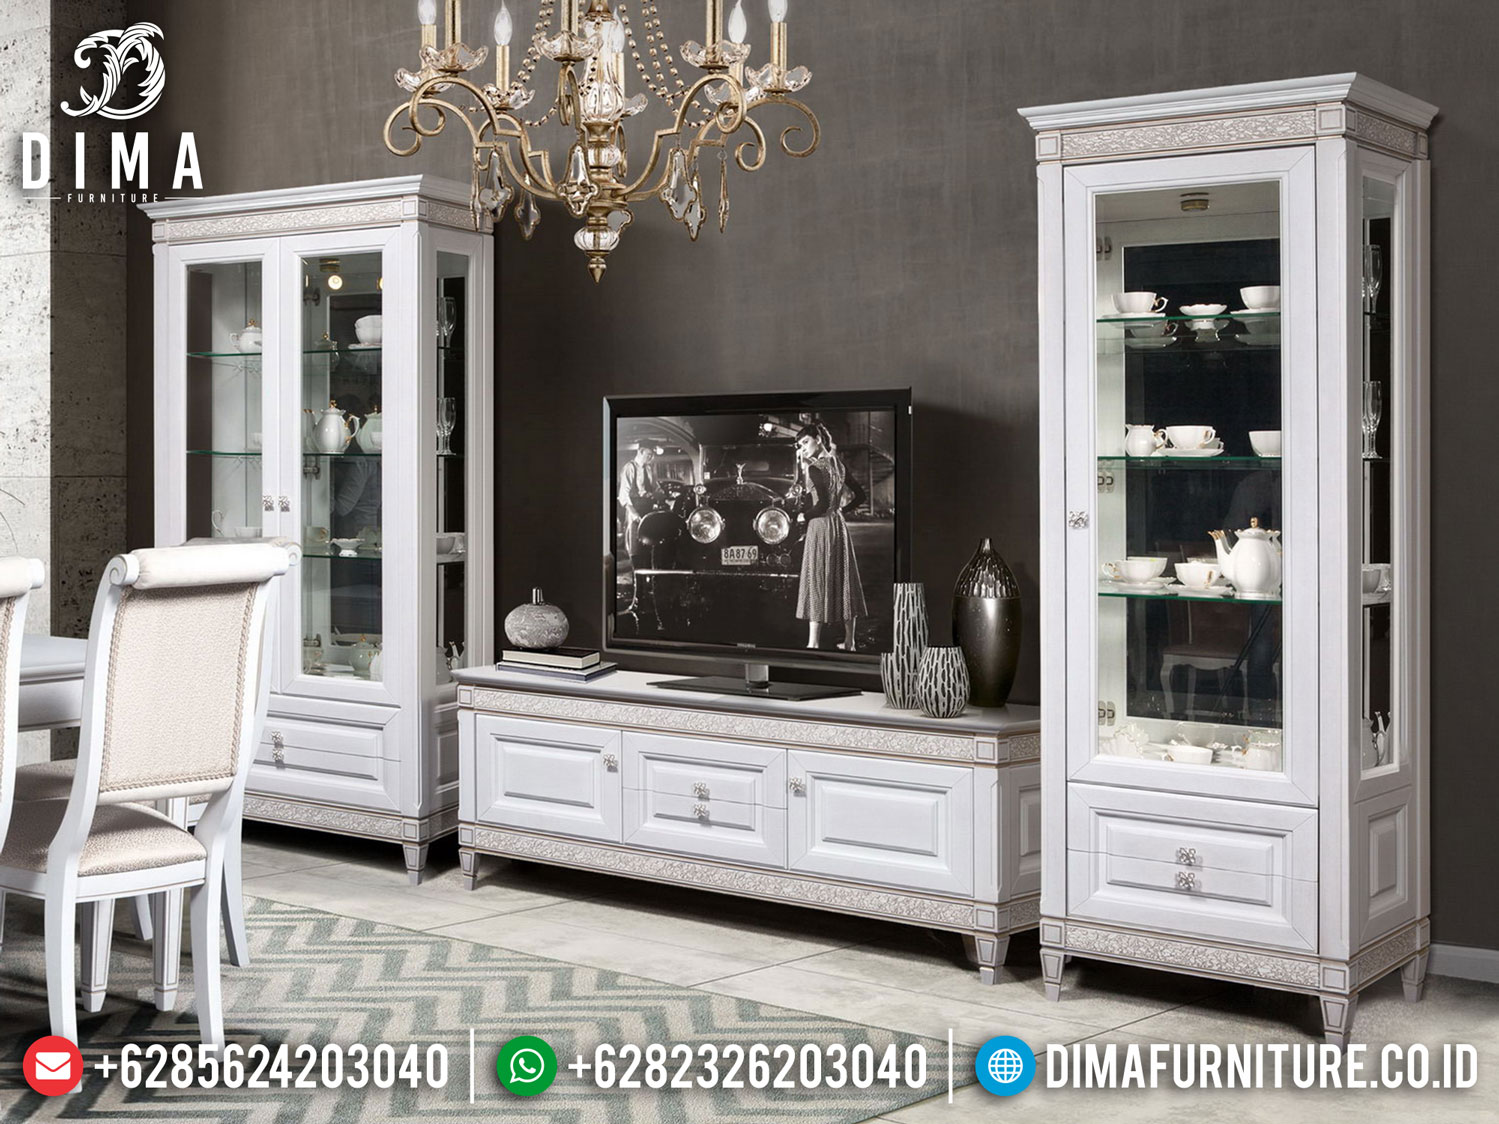 Alegro Bufet TV Minimalis New Design Best Product Quality Mebel Jepara ST-1015